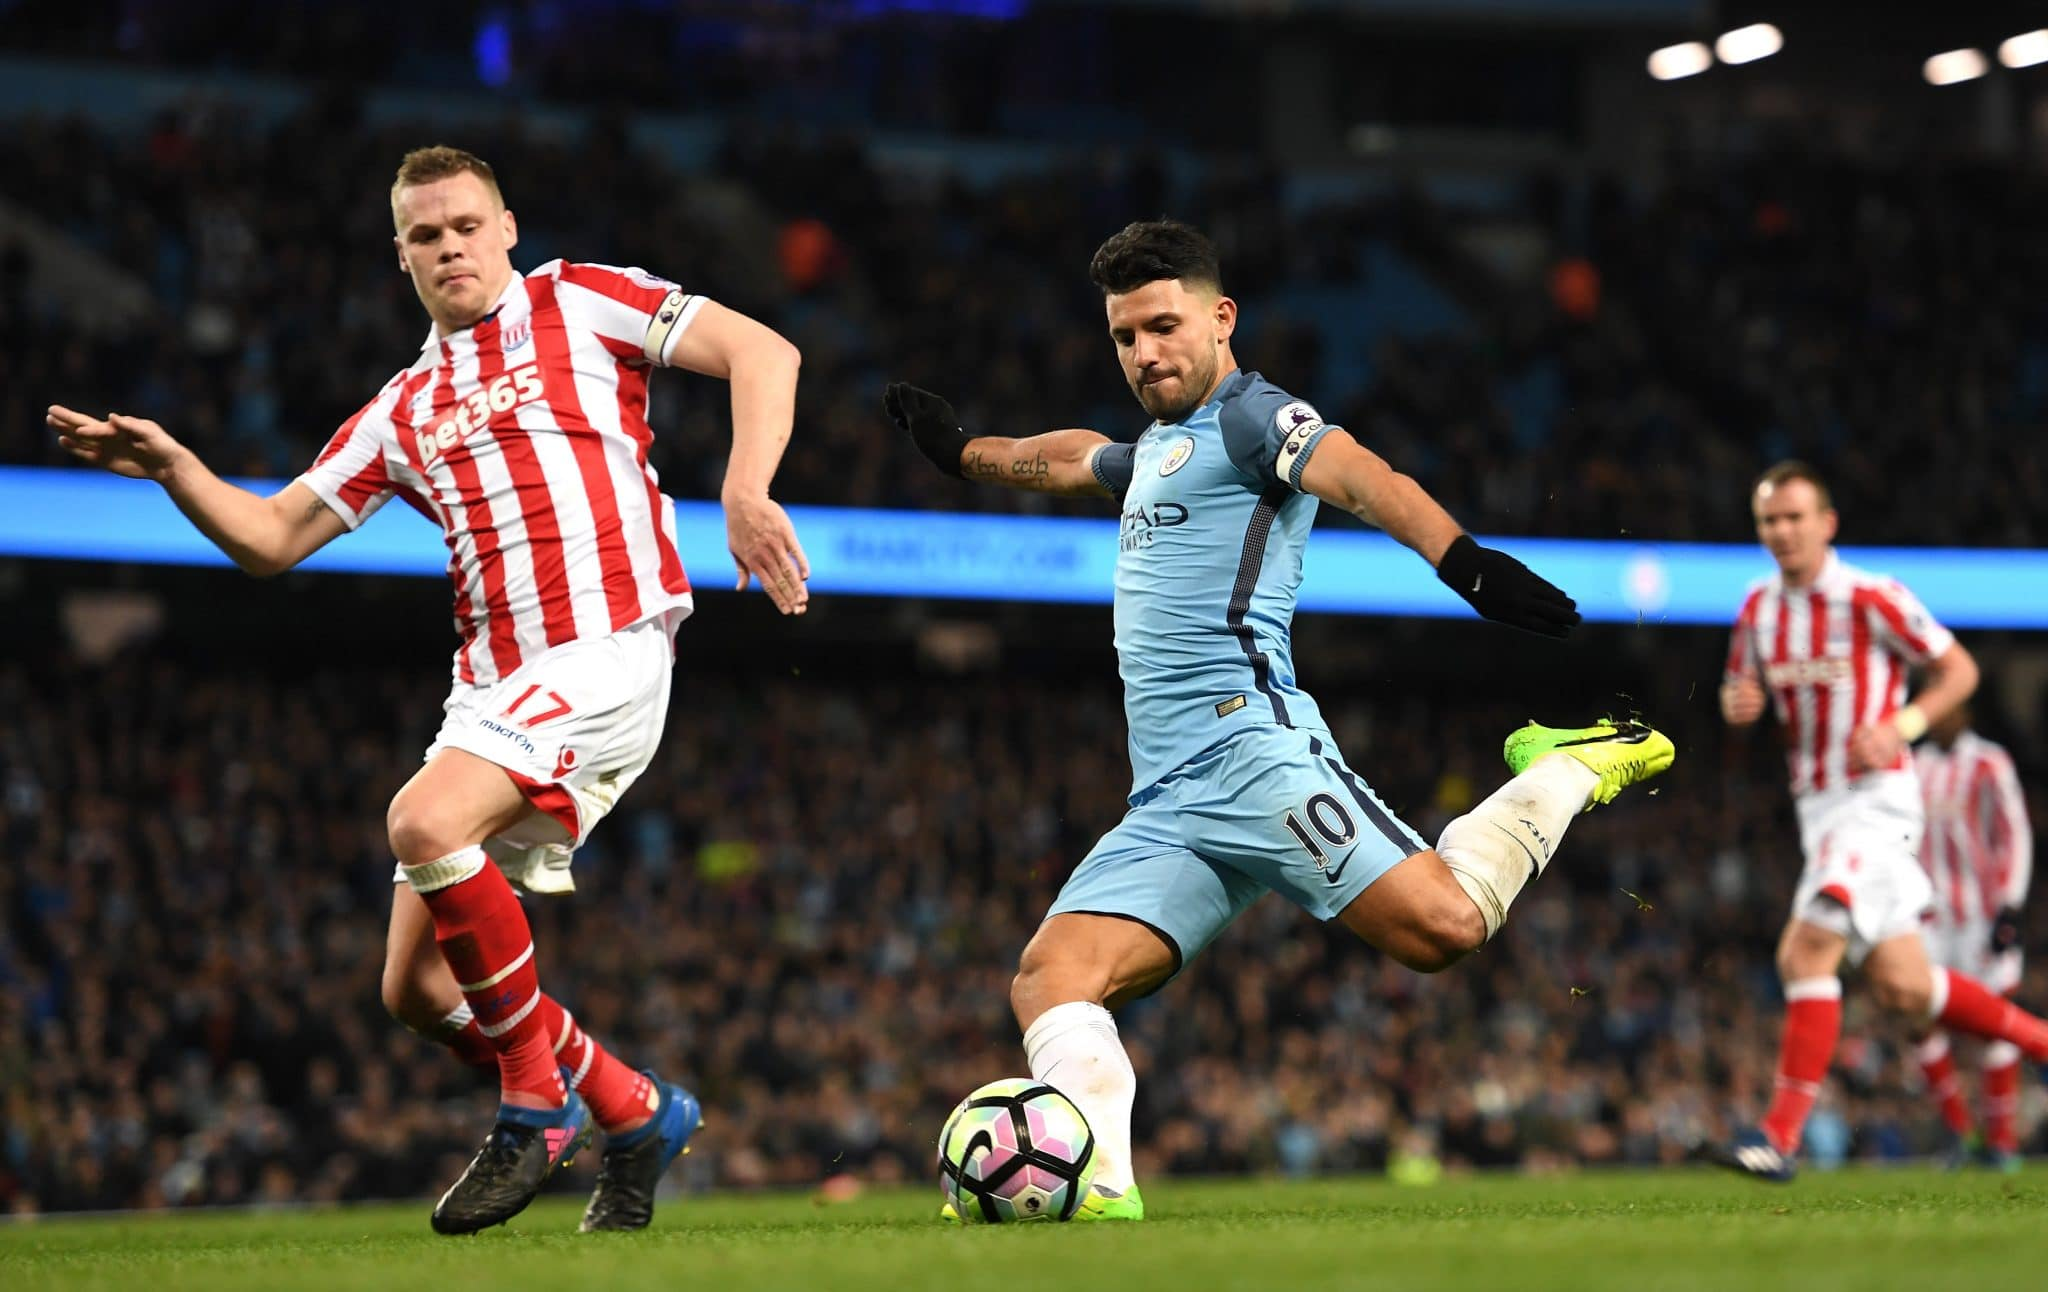 Manchester City striker Sergio Aguero gets a shot off against Stoke City defender Ryan Shawcross